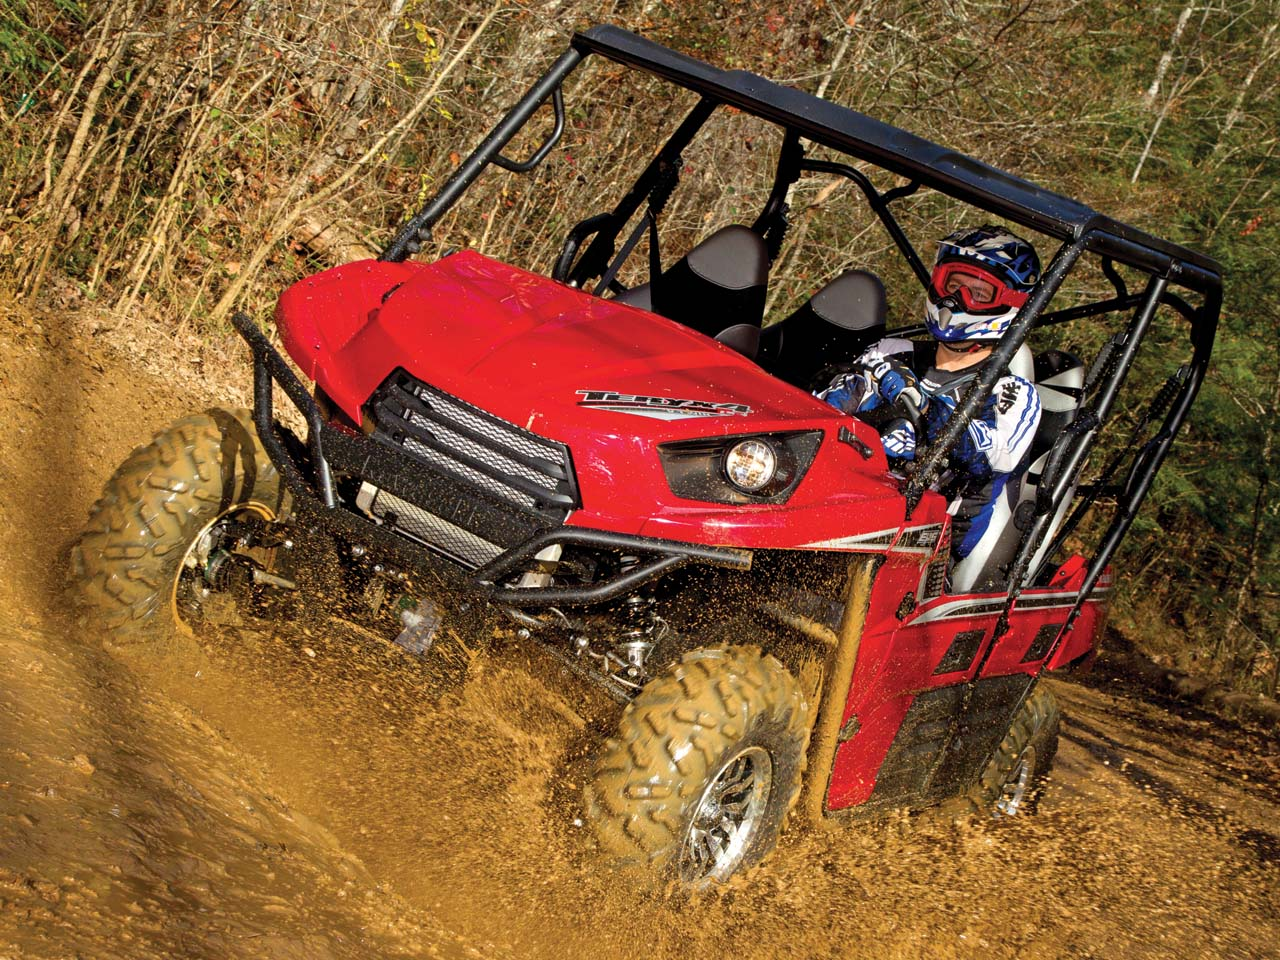 The tough half doors keep mud sticks and other intrusions out and they work perfectly every time. & 2012 Kawasaki Teryx 4 750 4x4 Review | ATV Illustrated pezcame.com